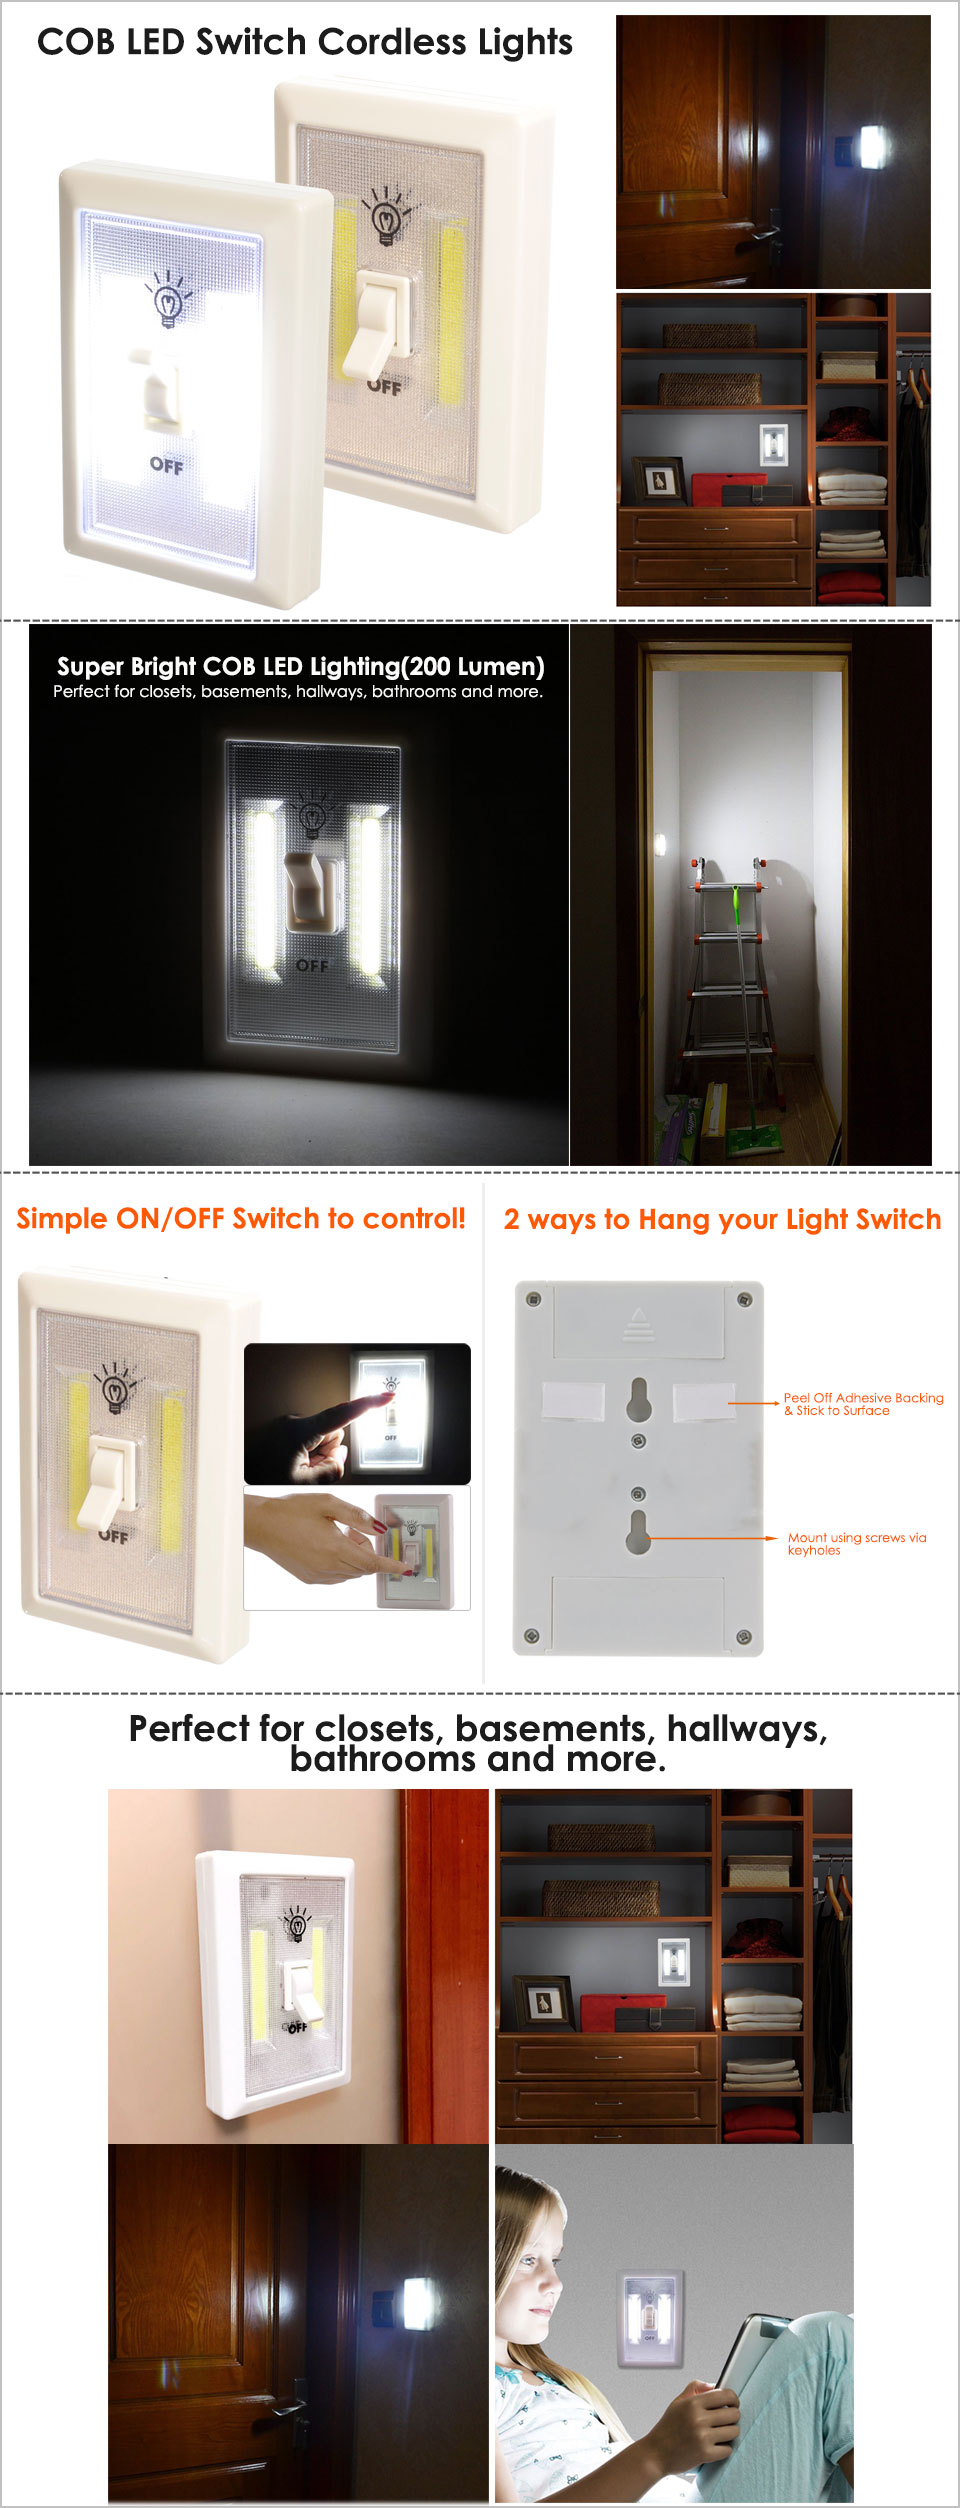 1 2 5x Cob Led Wall Switch Wireless Battery Operated Closet Cordless Wiring A House No Need To Call An Electrician You Can Have Bright Light Wherever Want It Without Expensive Or Installation Use Just Flip The